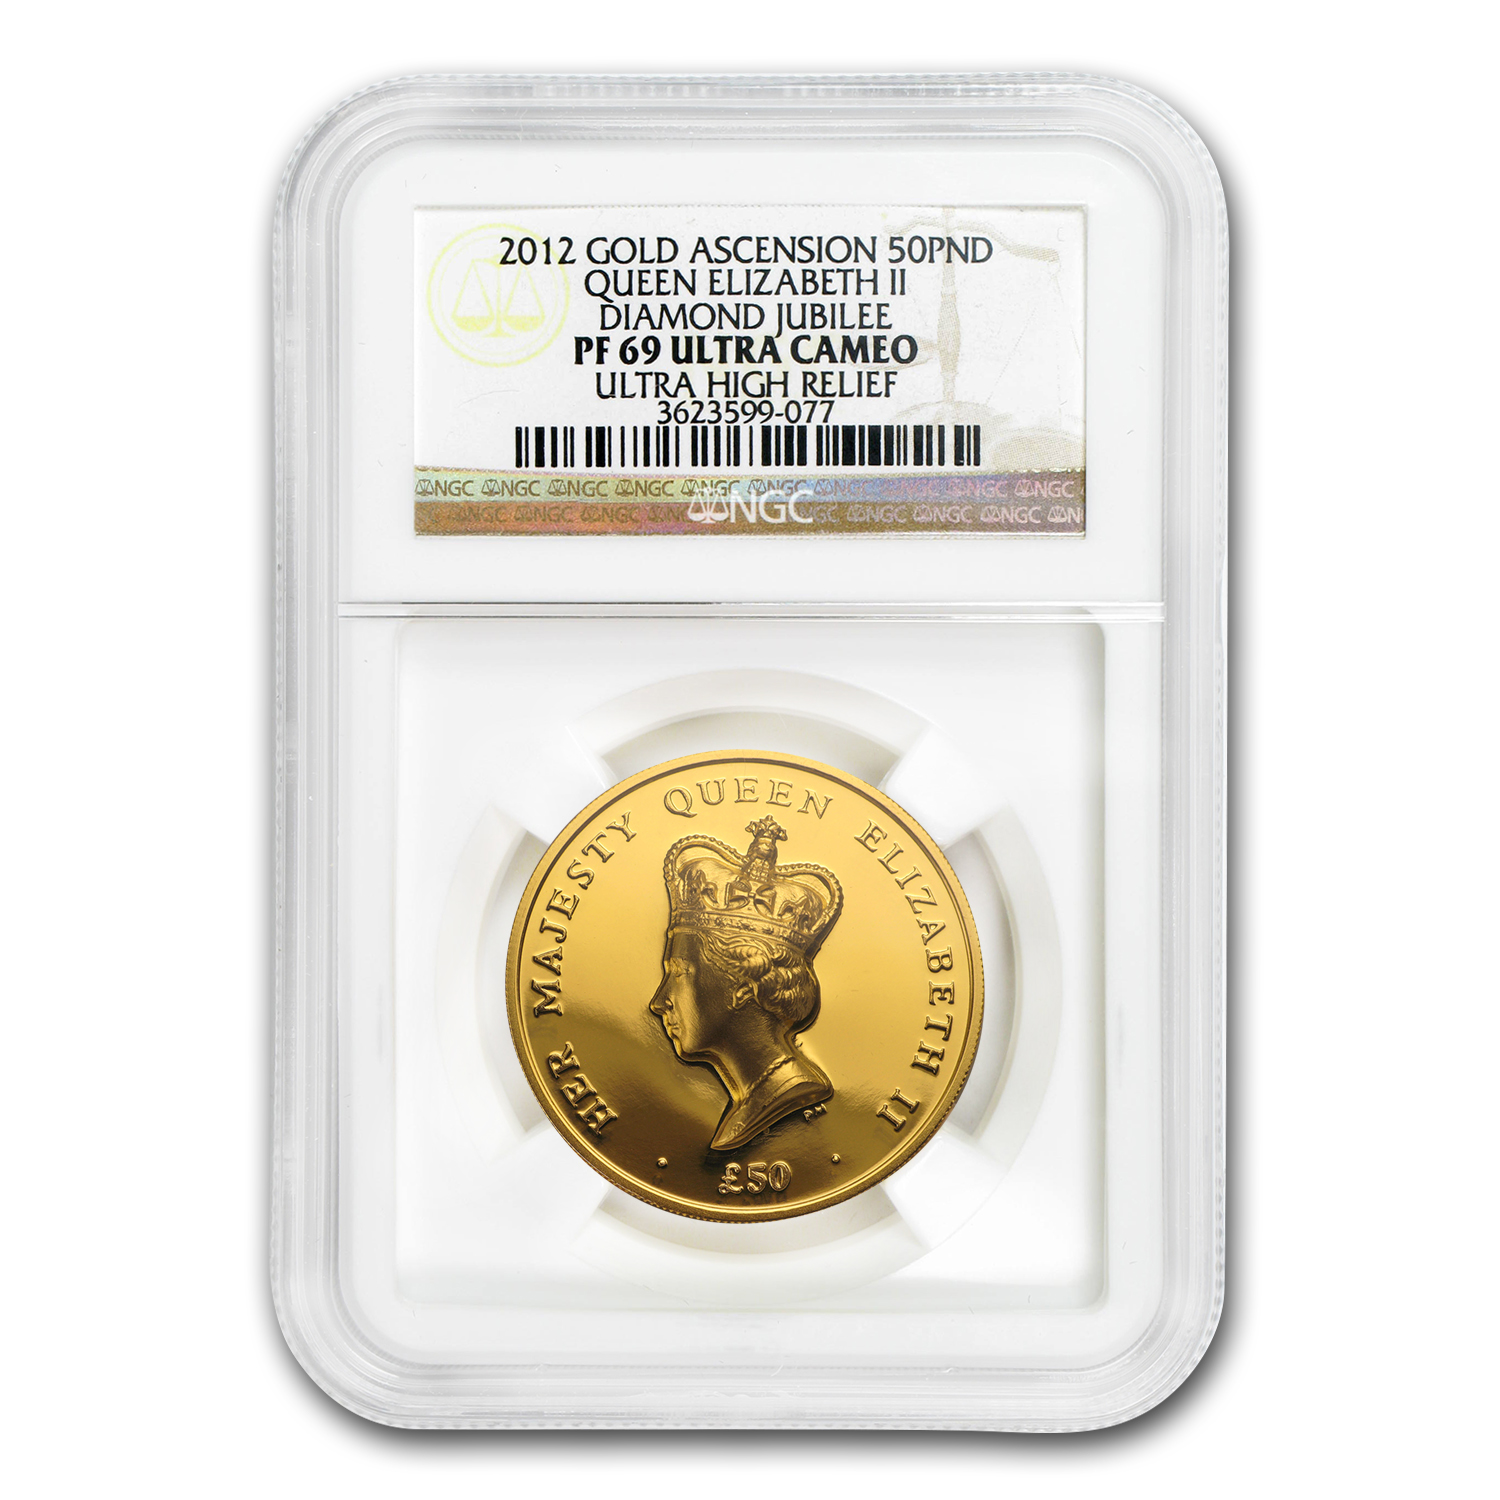 2012 Ascension Island Gold £50 PF-69 NGC